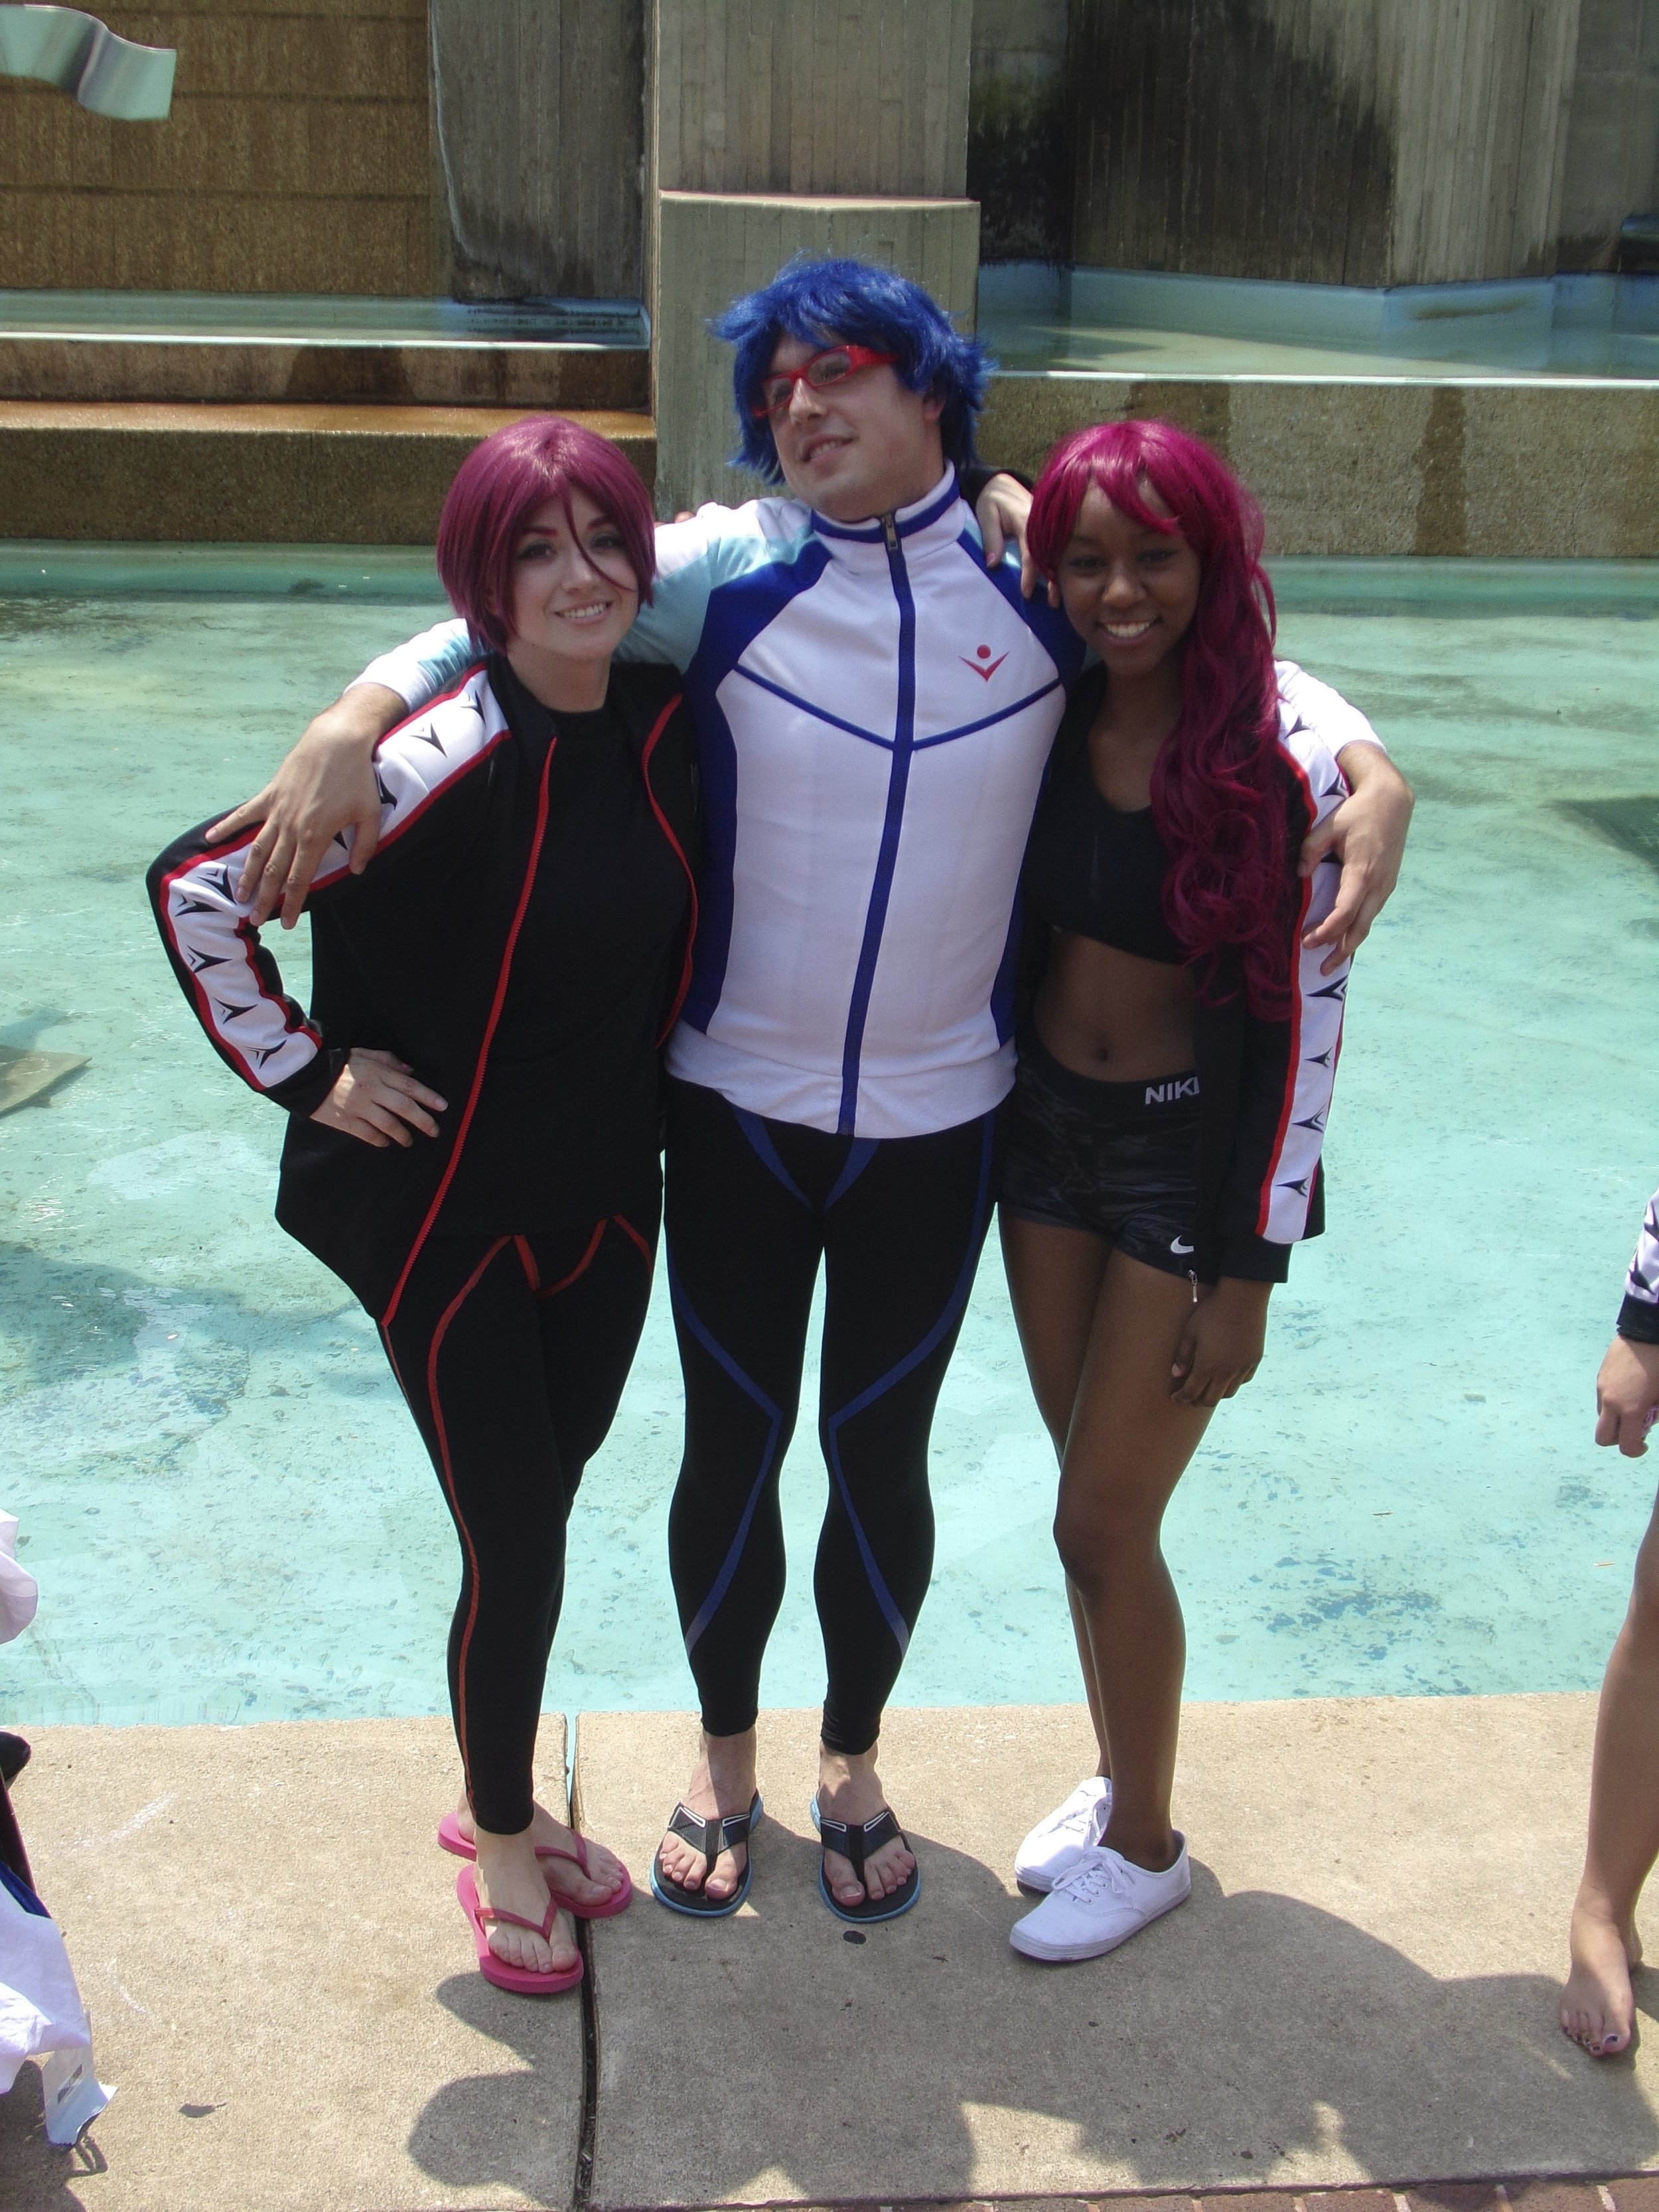 """""""We had a photo shoot going on with about 40 of us [Otakon attendees], so we were all taking random photos together,"""" says Liz about cosplaying Rin from Free! at Otakon (shot by Peter Vazquez)."""